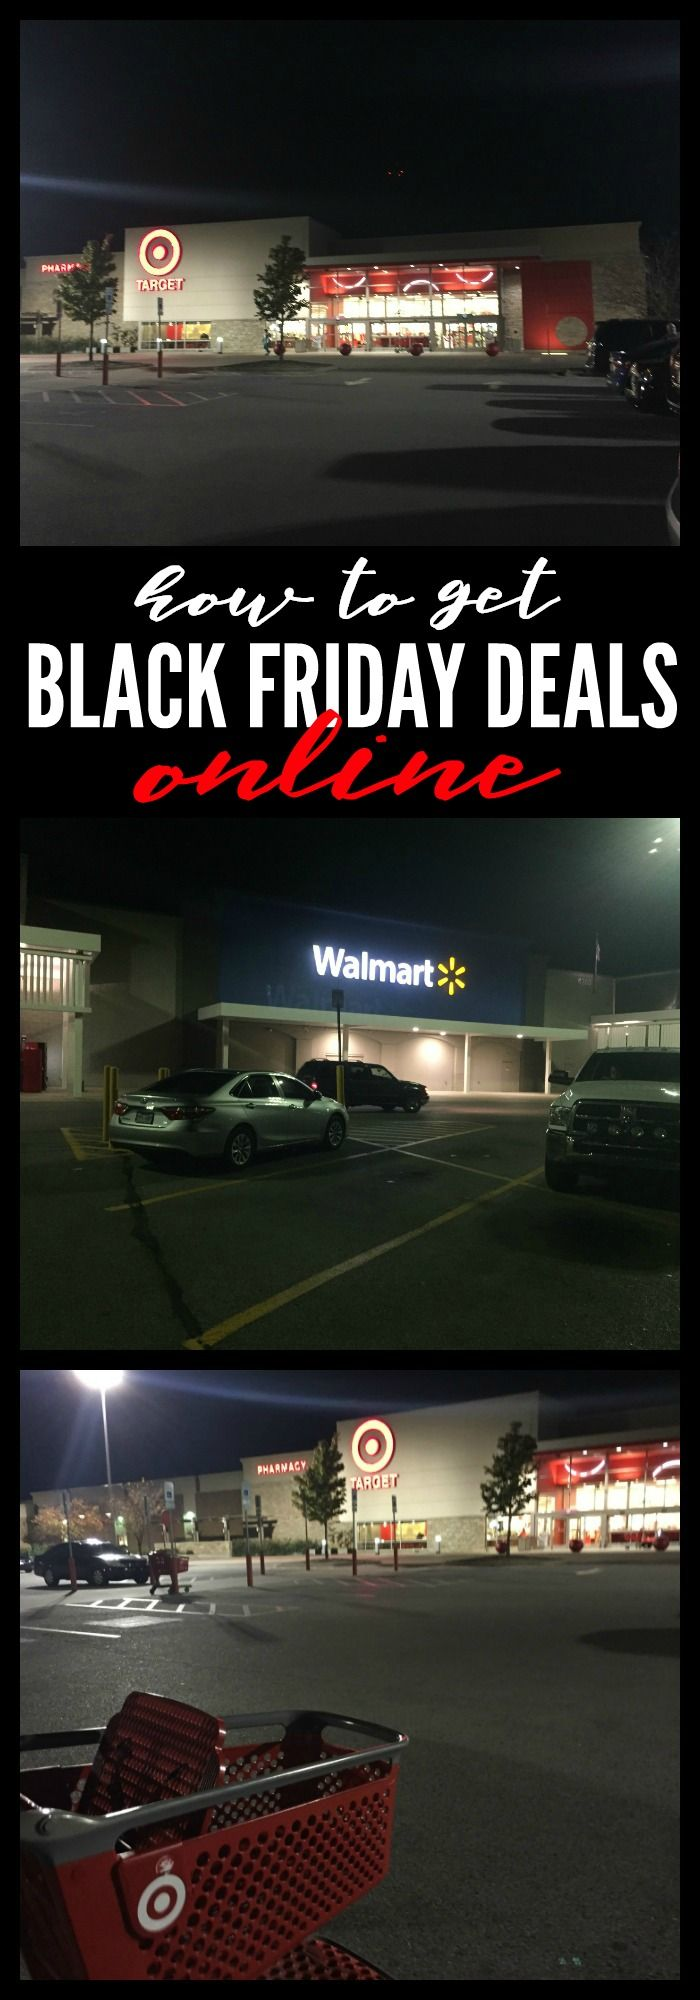 Secrets to Black Friday Shopping Online that no one tells you! Learn how to get Black Friday Deals online and get Hot Deal Alerts when new Black Friday Ads are released!